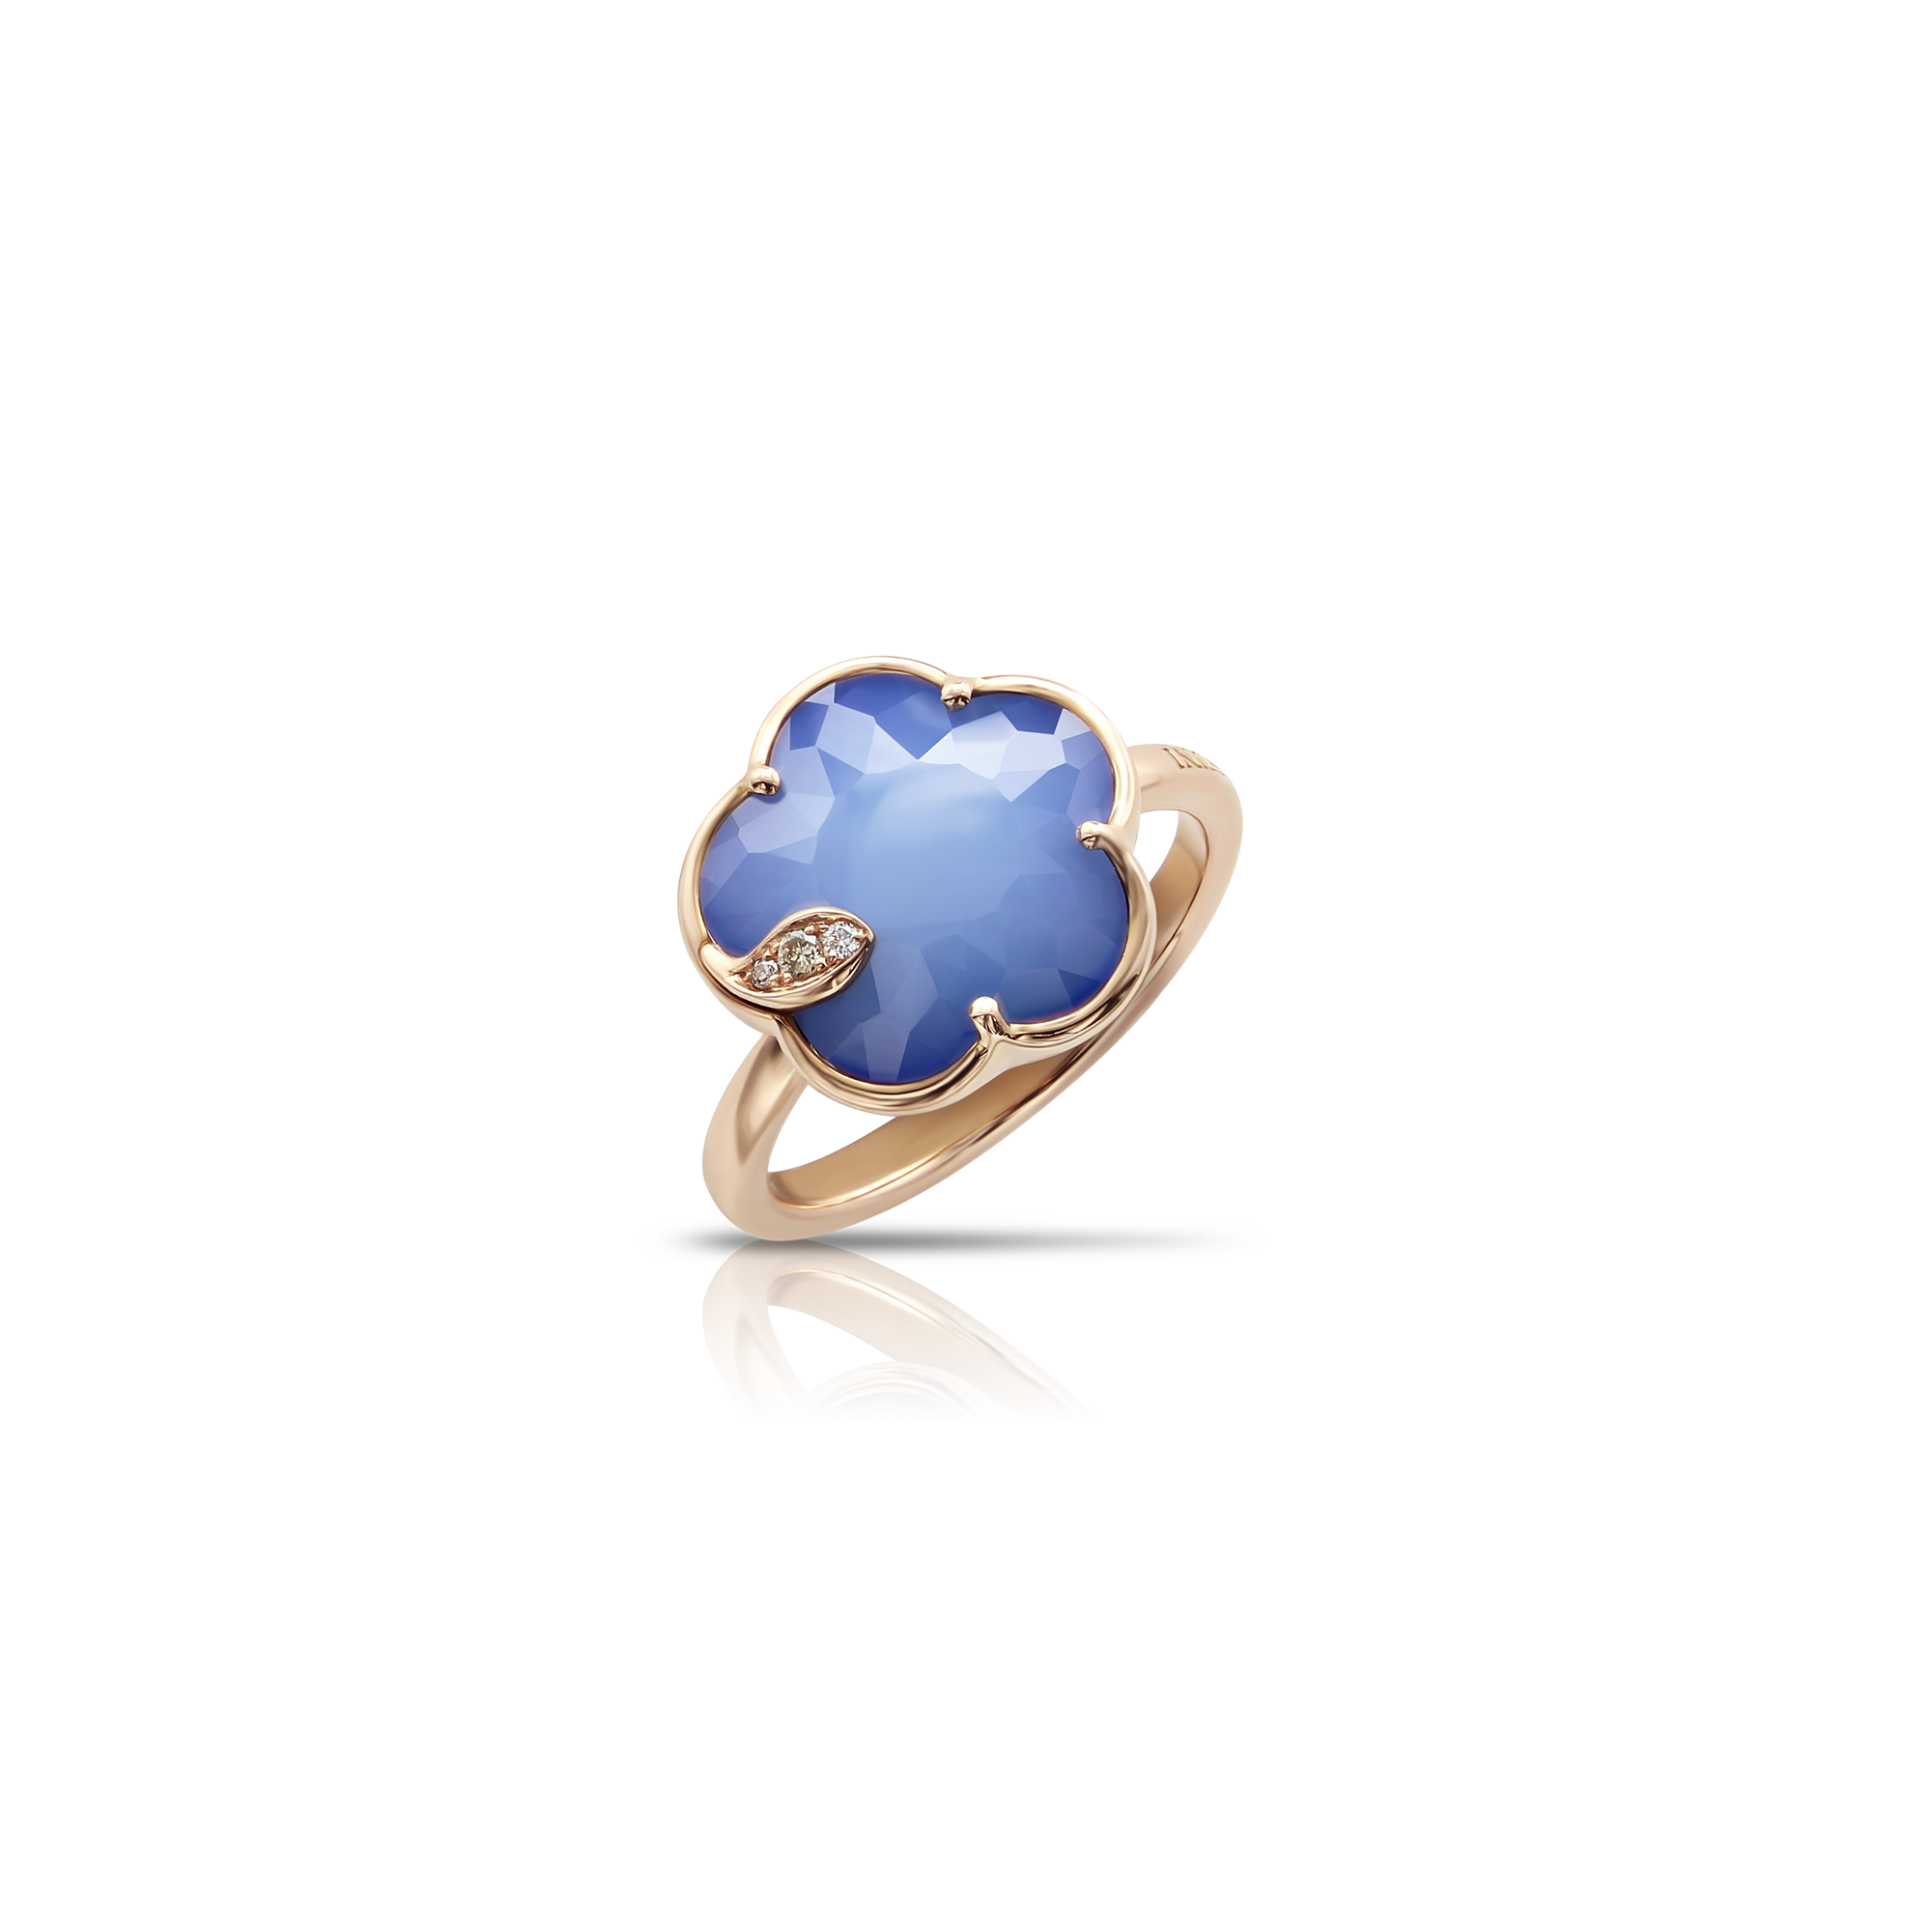 18k Rose Gold Petit Joli Ring with White Agate and Lapis Lazuli Doublet, White and Champagne Diamonds